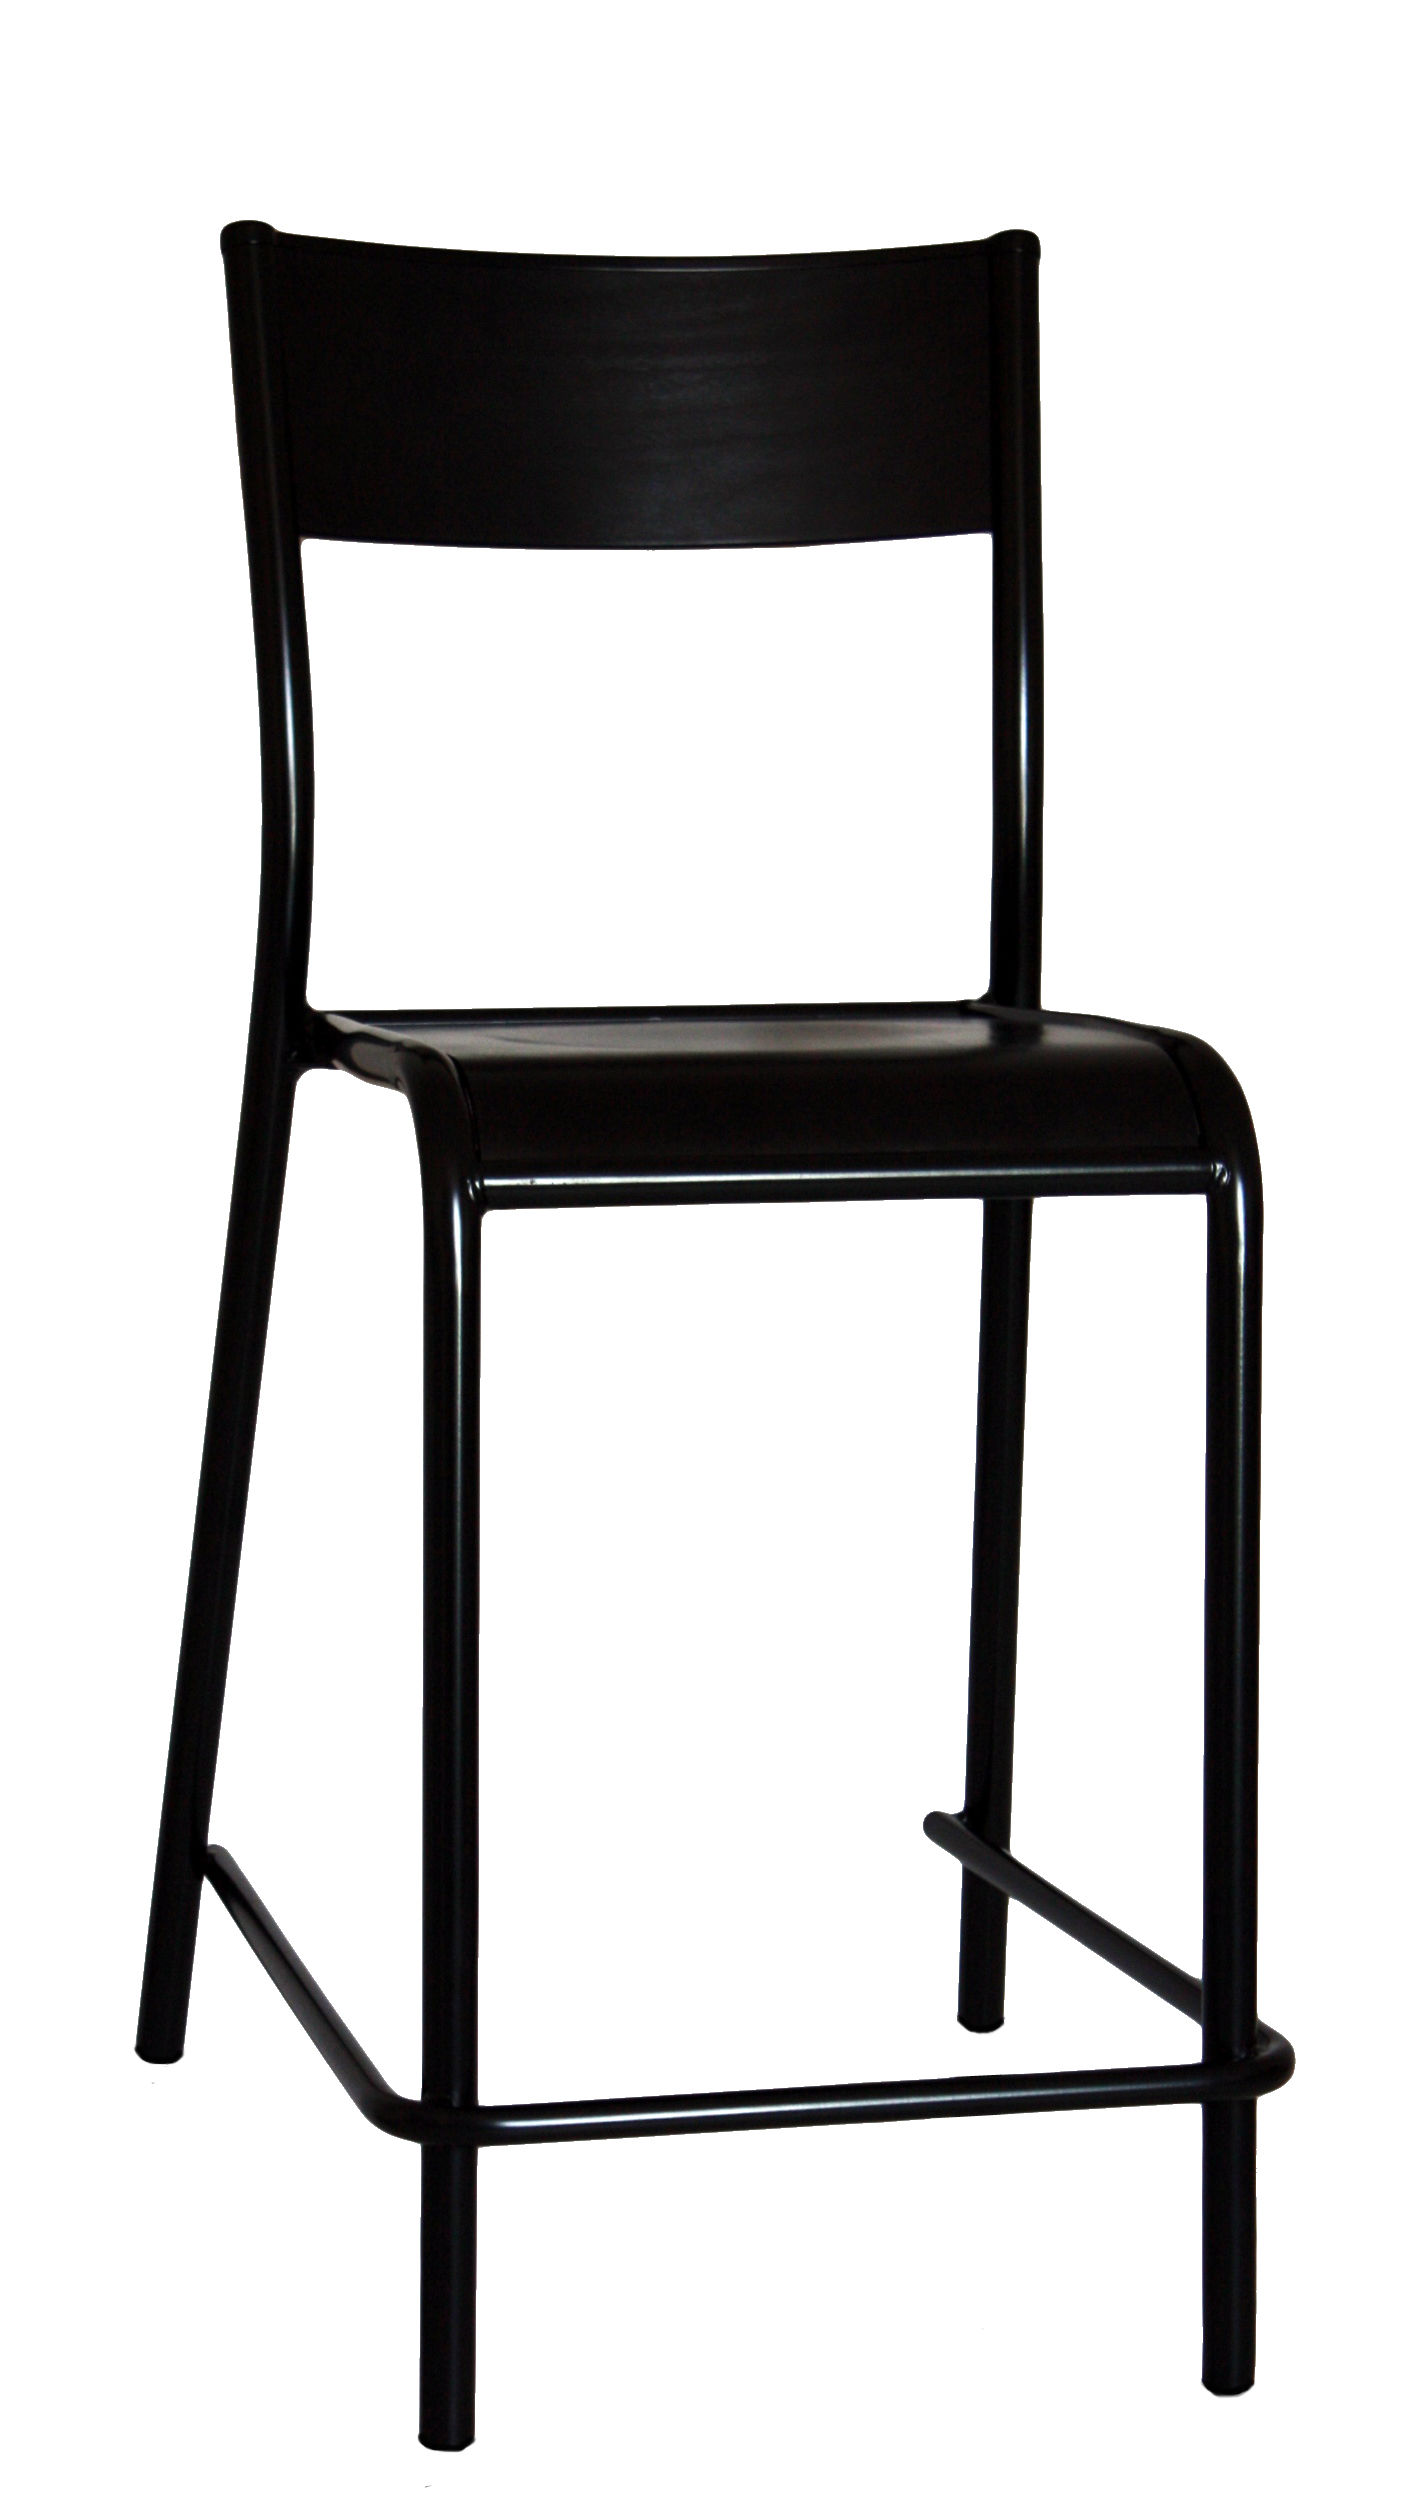 chaise de bar 510 originale assise bois h 60 cm h 60. Black Bedroom Furniture Sets. Home Design Ideas